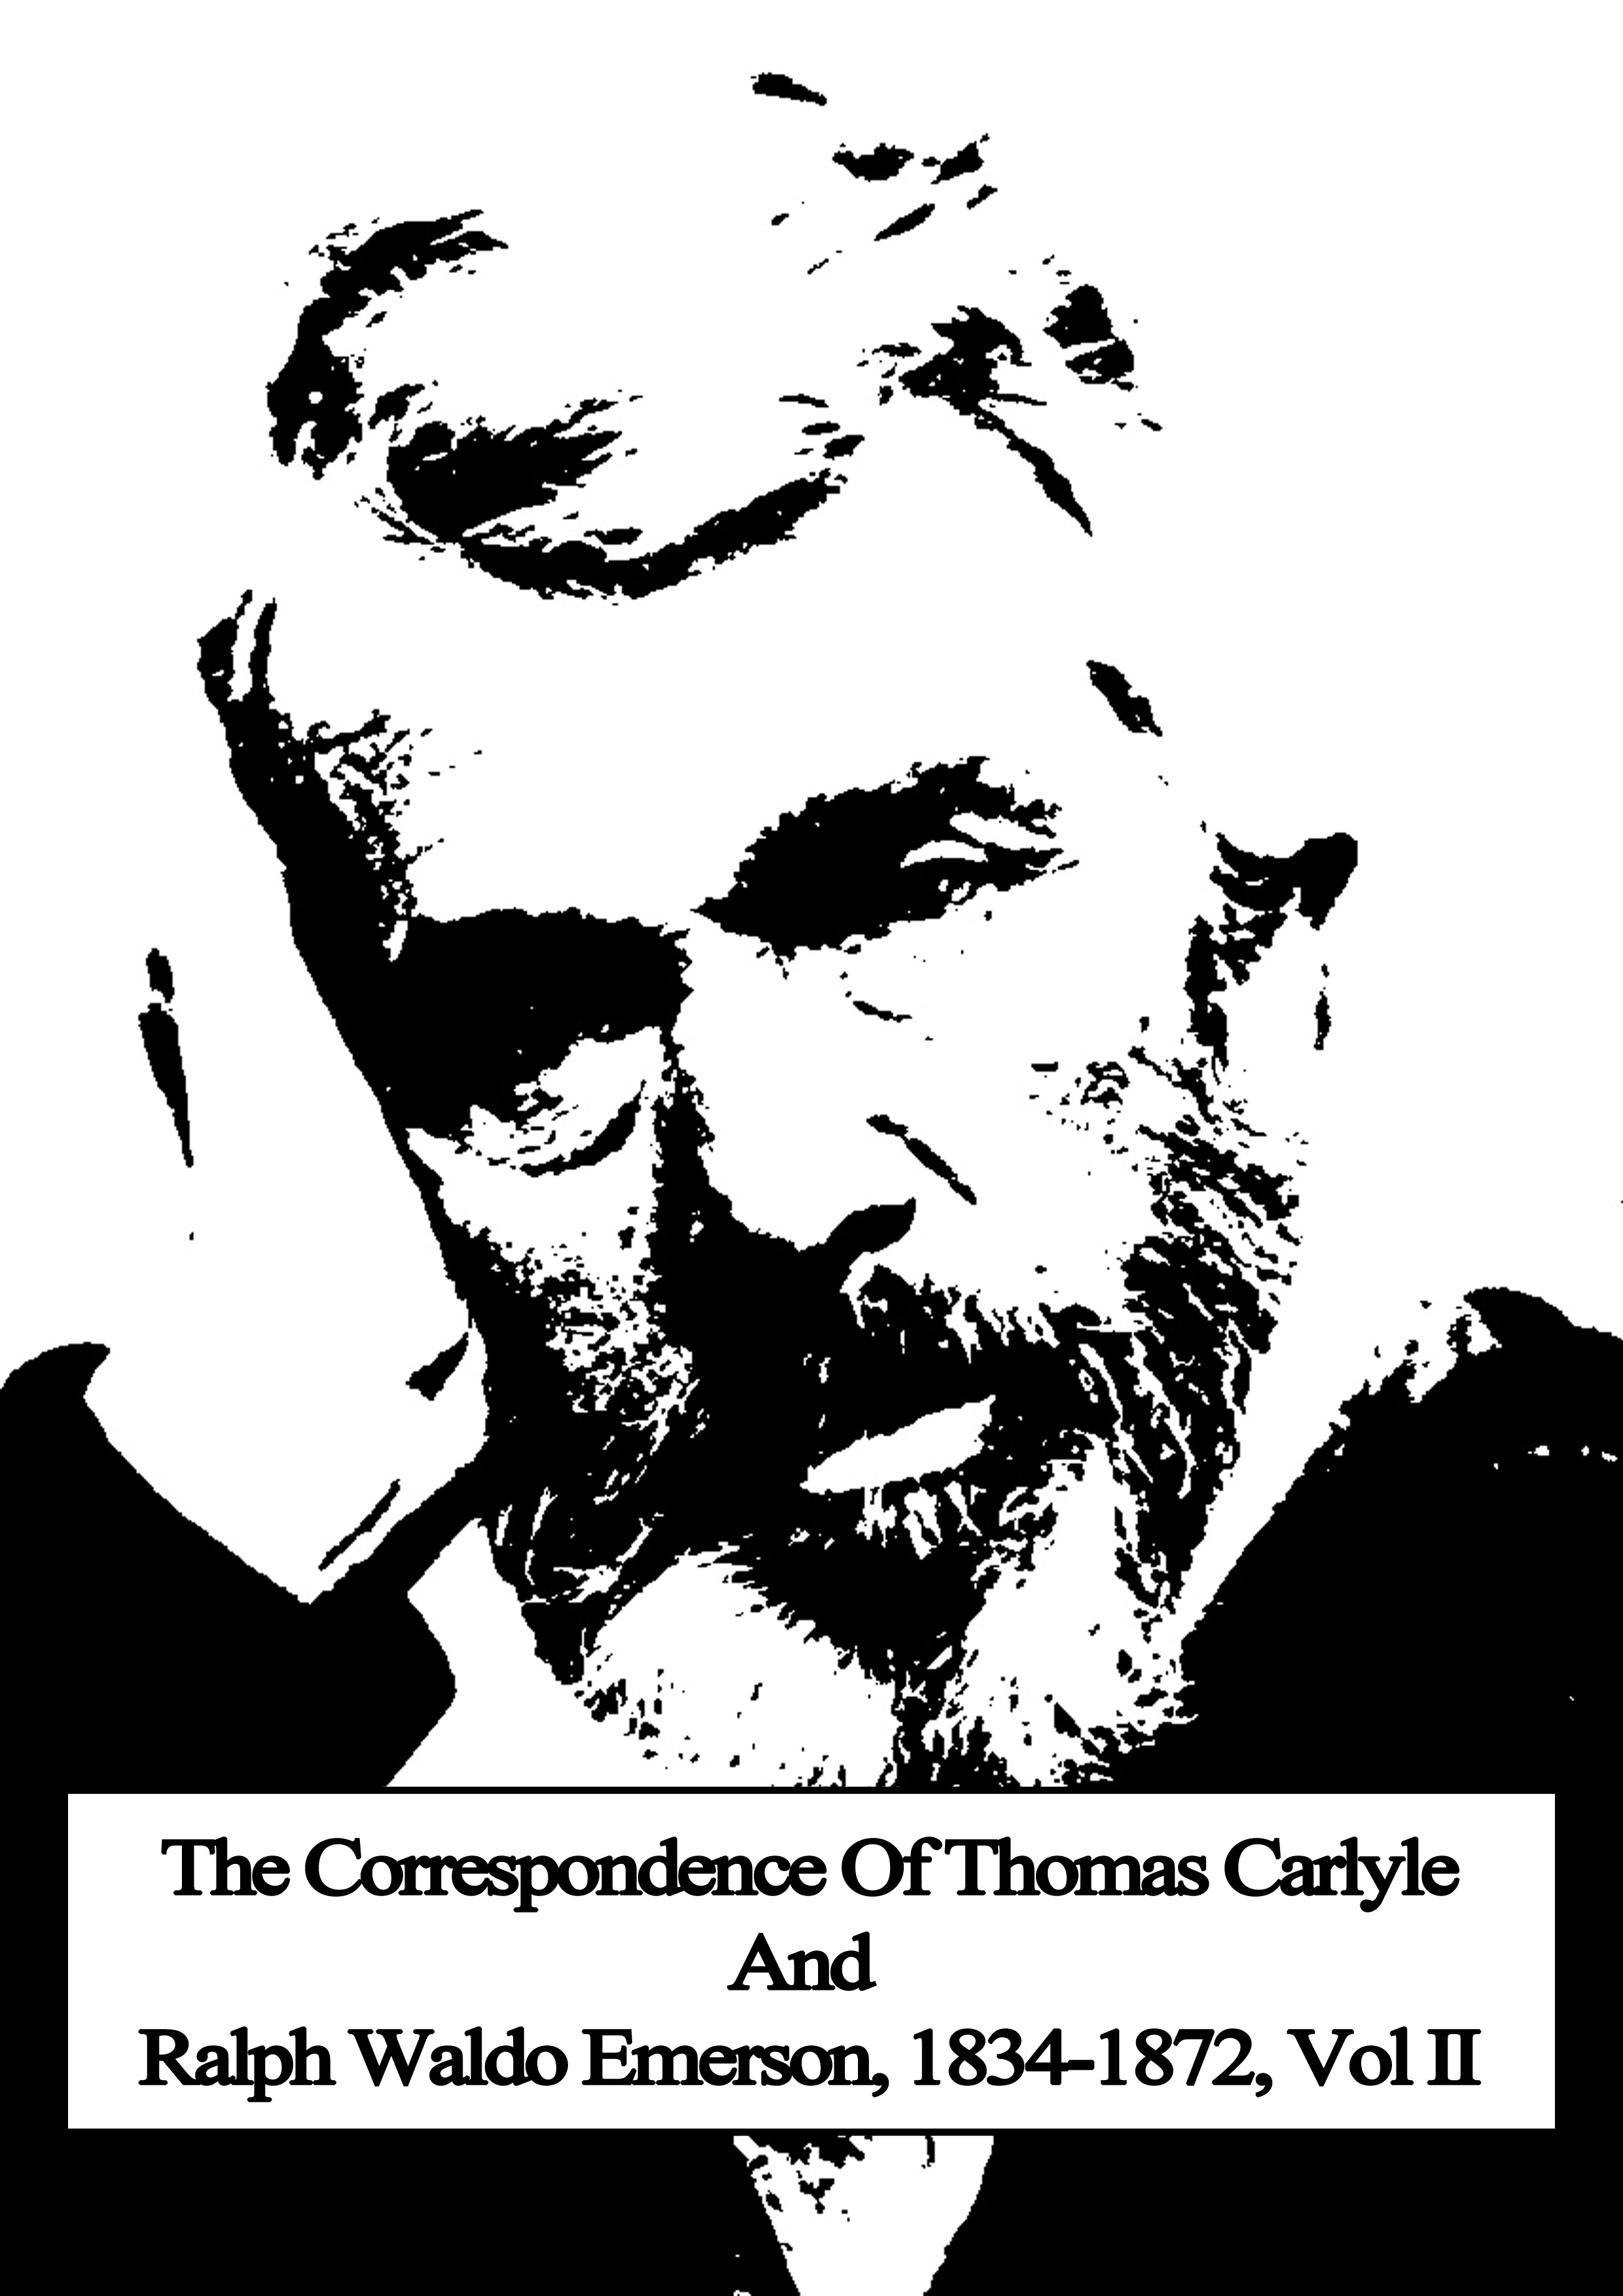 The Correspondence Of Thomas Carlyle And Ralph Waldo Emerson, 1834-1872, Vol II